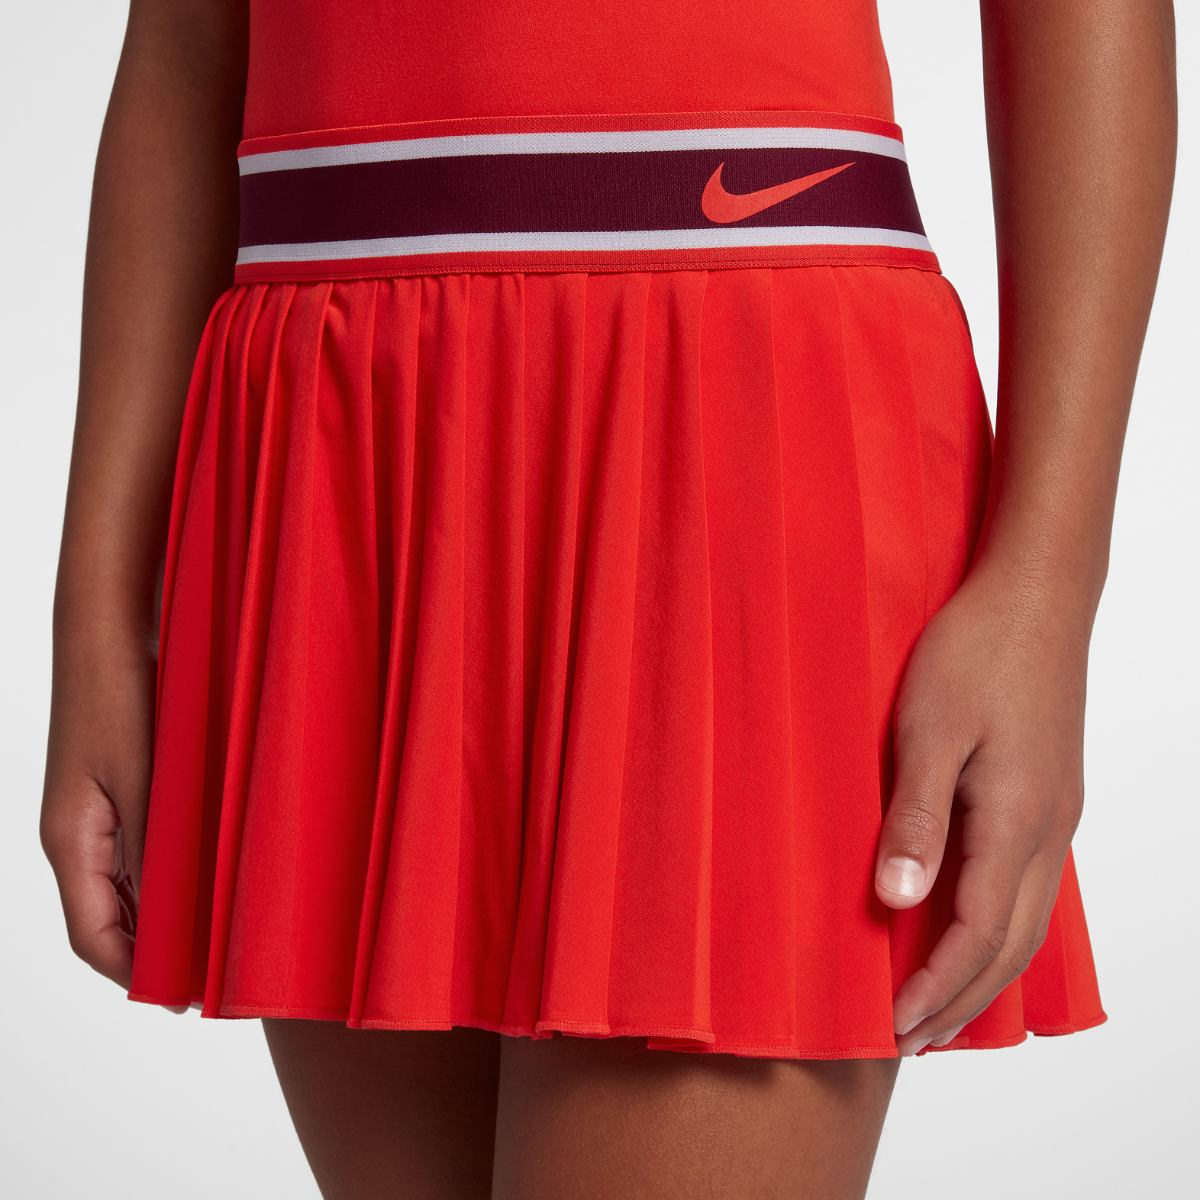 Теннисная юбка Nike GIRLS NKCT VICTORY SKIRT RED 27dfcee610afc